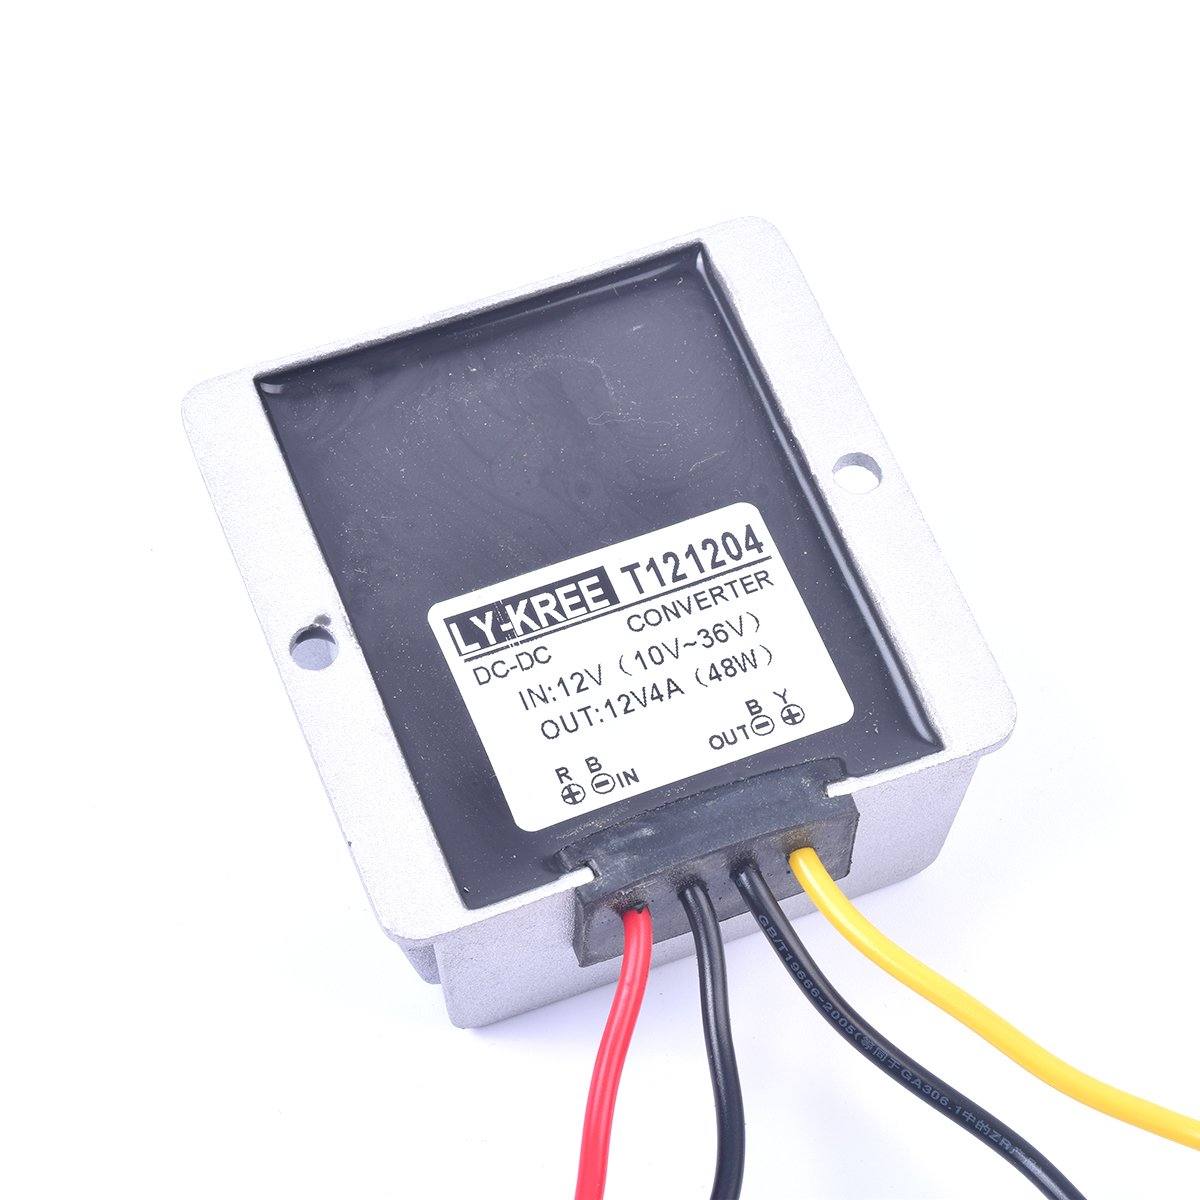 Car Dc 12v 4a Voltage Stabilizer Surge Protector Power Boat Wiring Diagrams Regulator Supply For Auto Truck Vehicle Solar System Etc